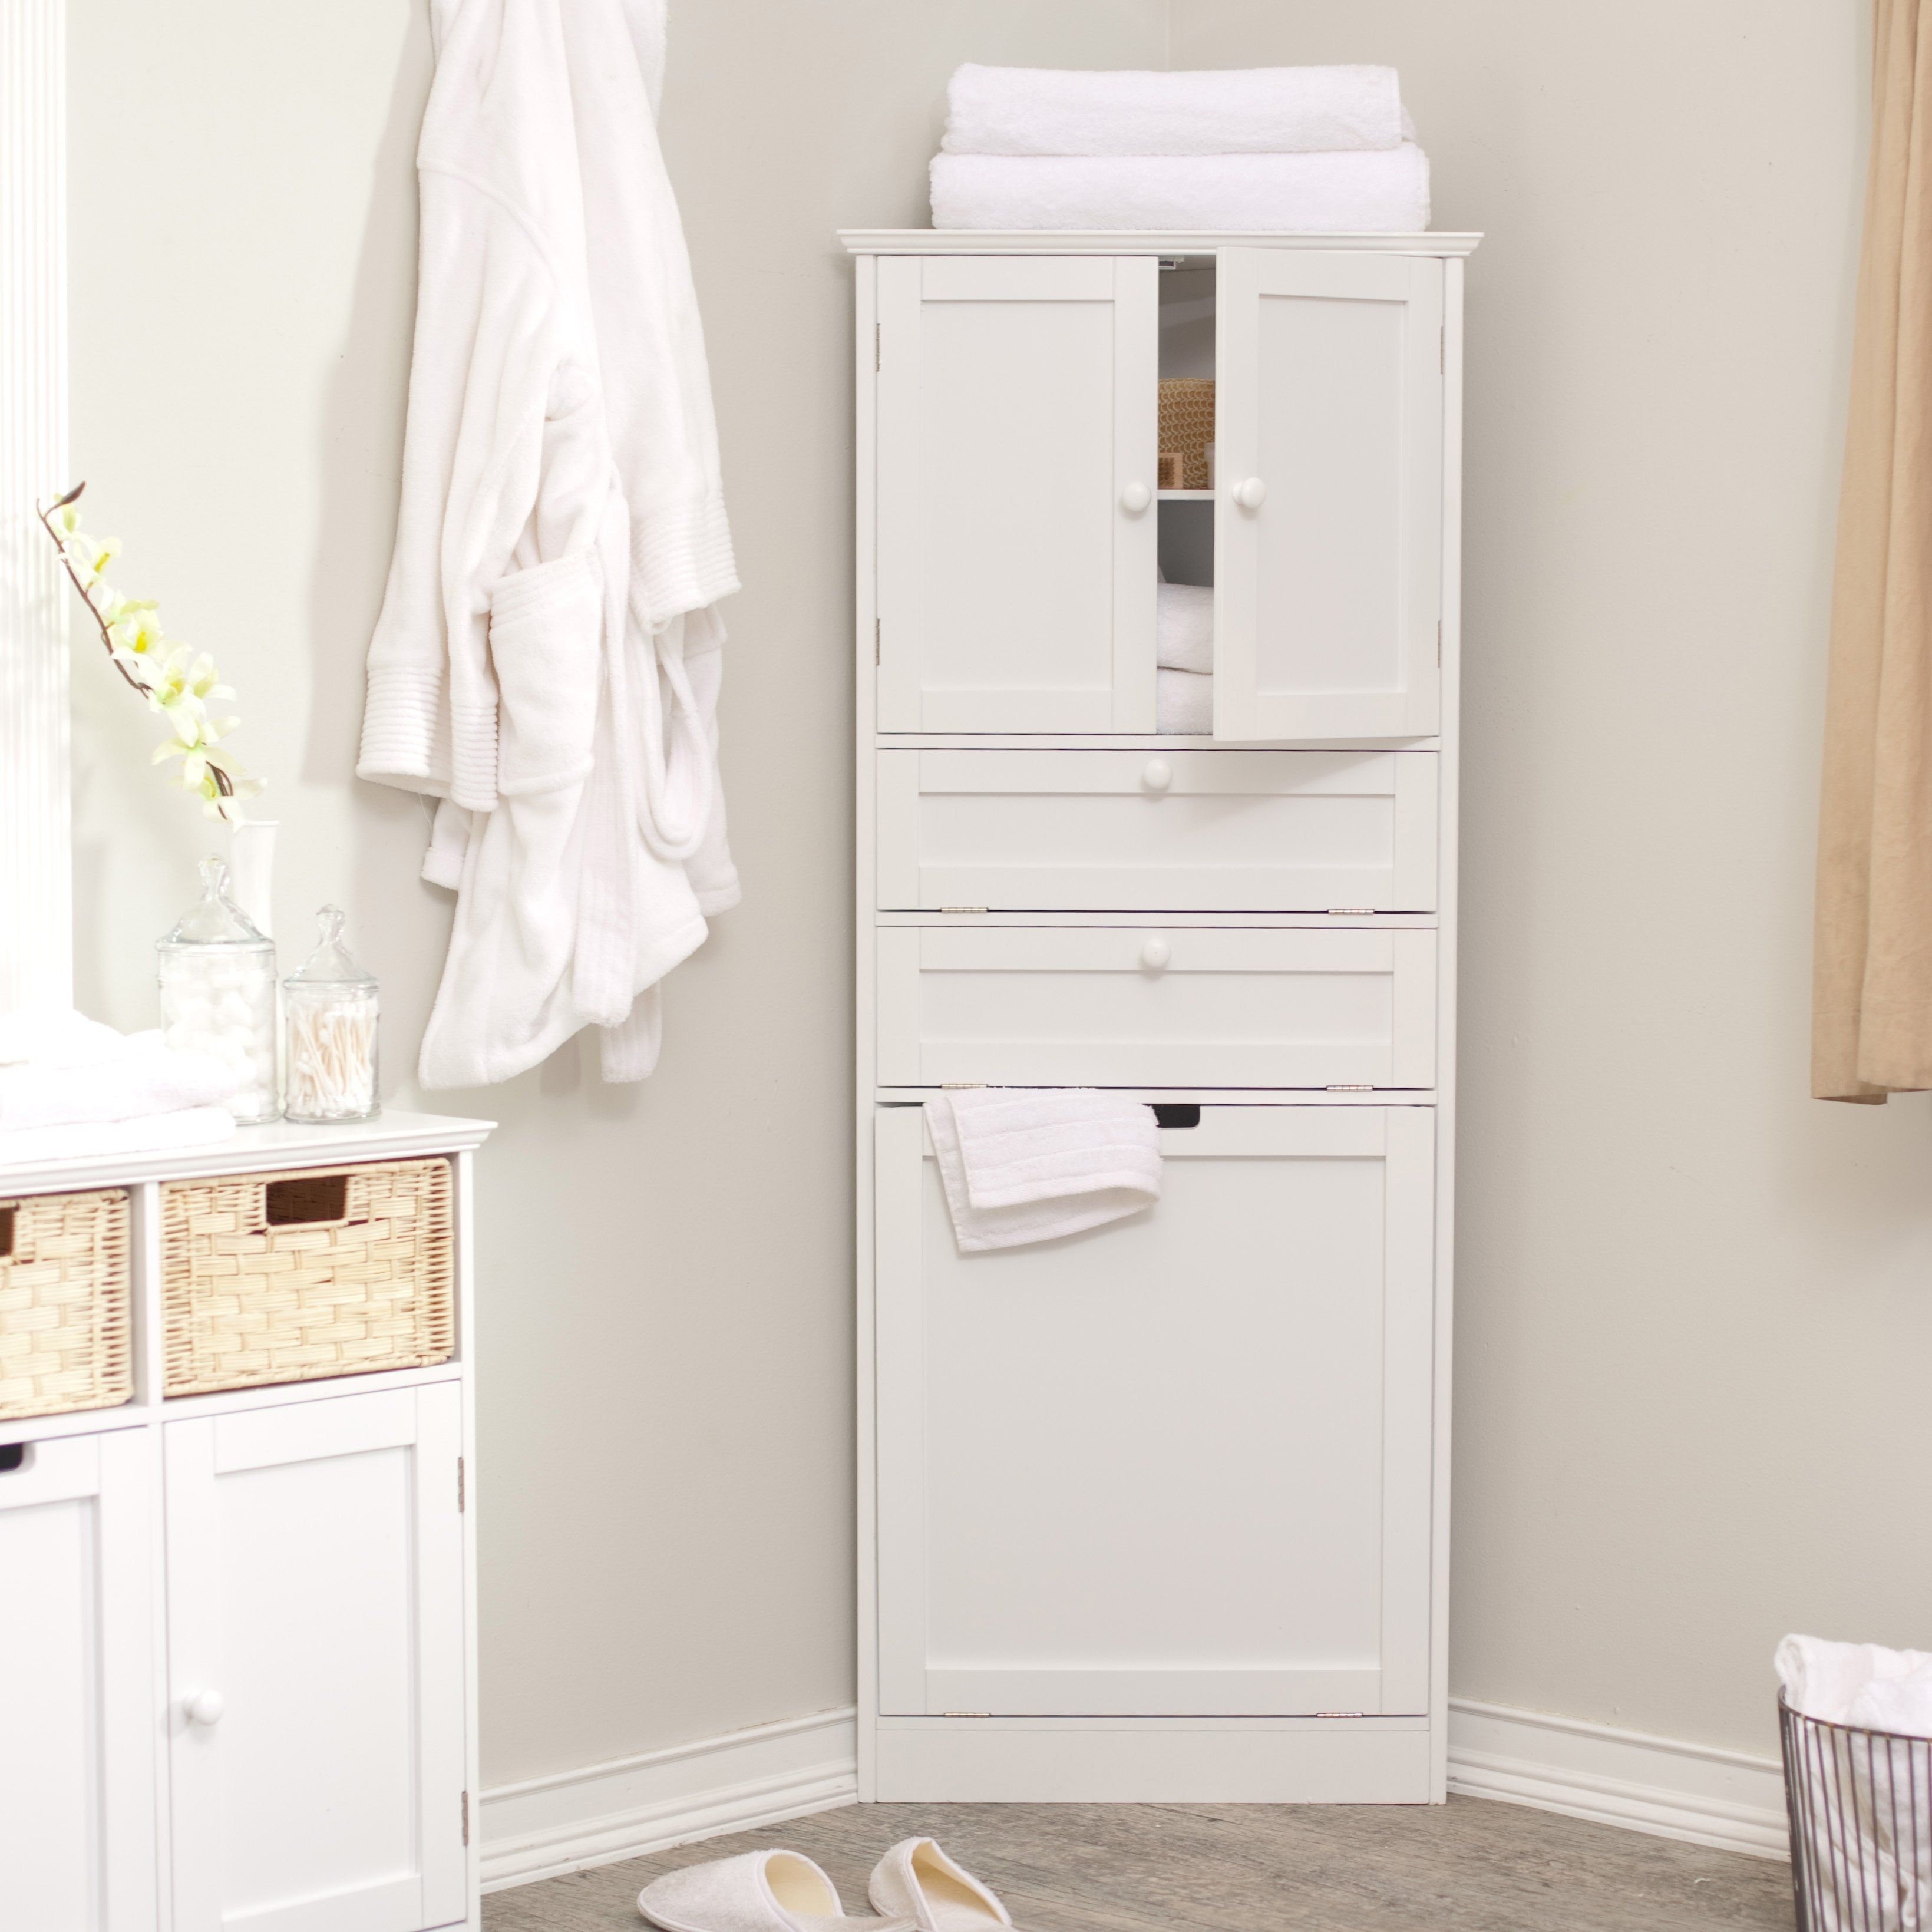 Tall White Corner Bathroom Cabinet | http://betdaffaires.com ...